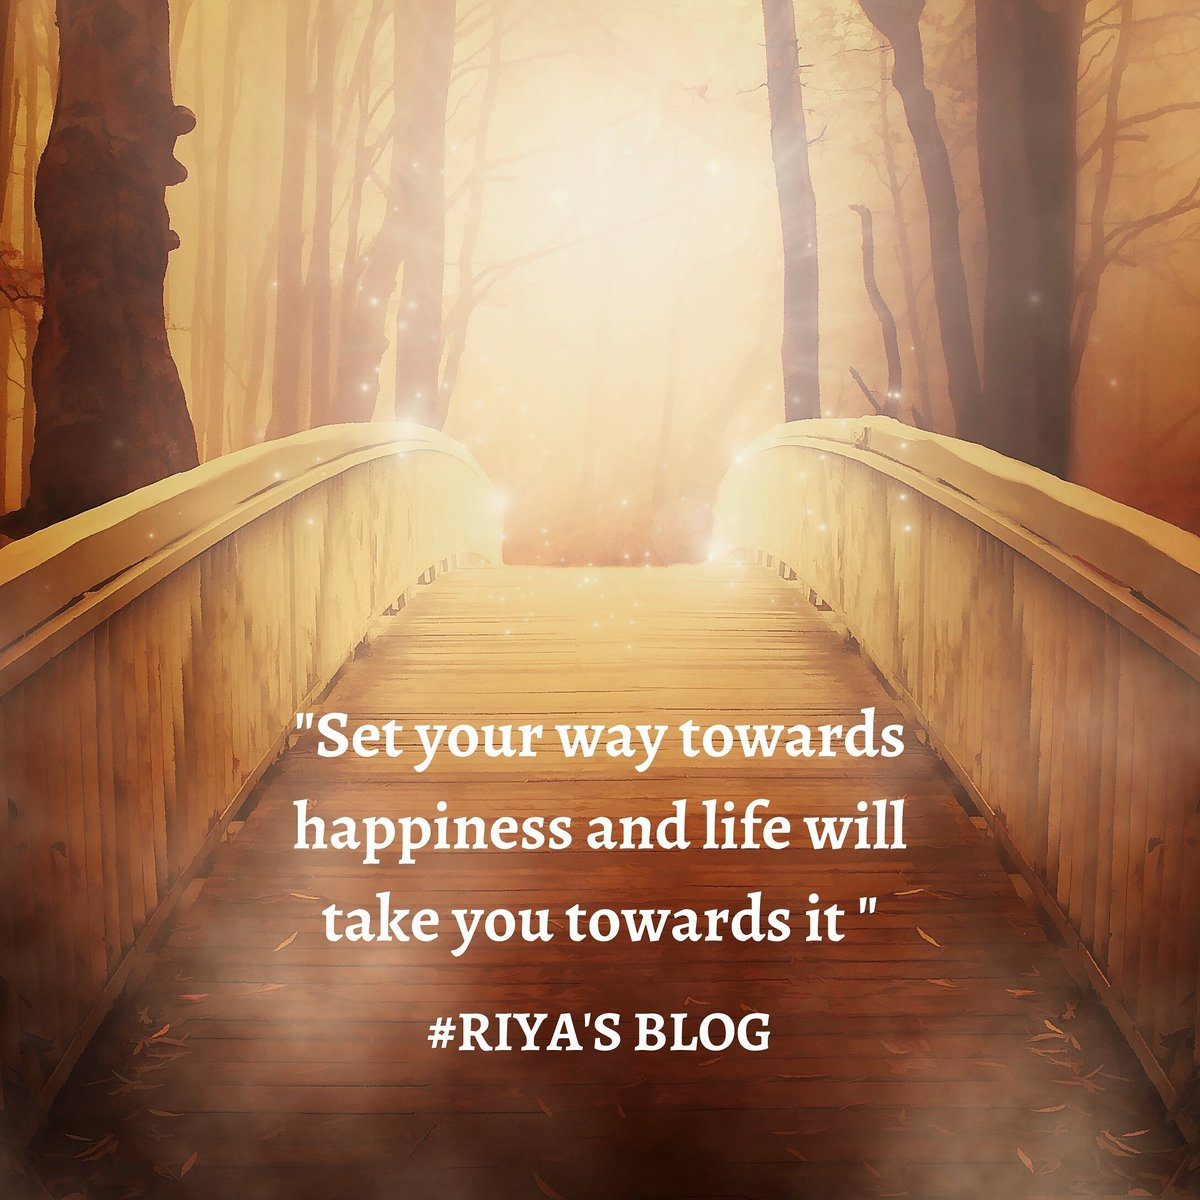 Go towards your happiness ... #riyasblogs #blog #blogs #blogging #blogger_de #bloggingcommunity #blogforlife #writingcommunity #writerscommunity #instagram #writersofinstagram #writinginspiration #readers #reading #quoteofinstagram #quotess #quoteofthedaypic.twitter.com/7IbNOuktiH